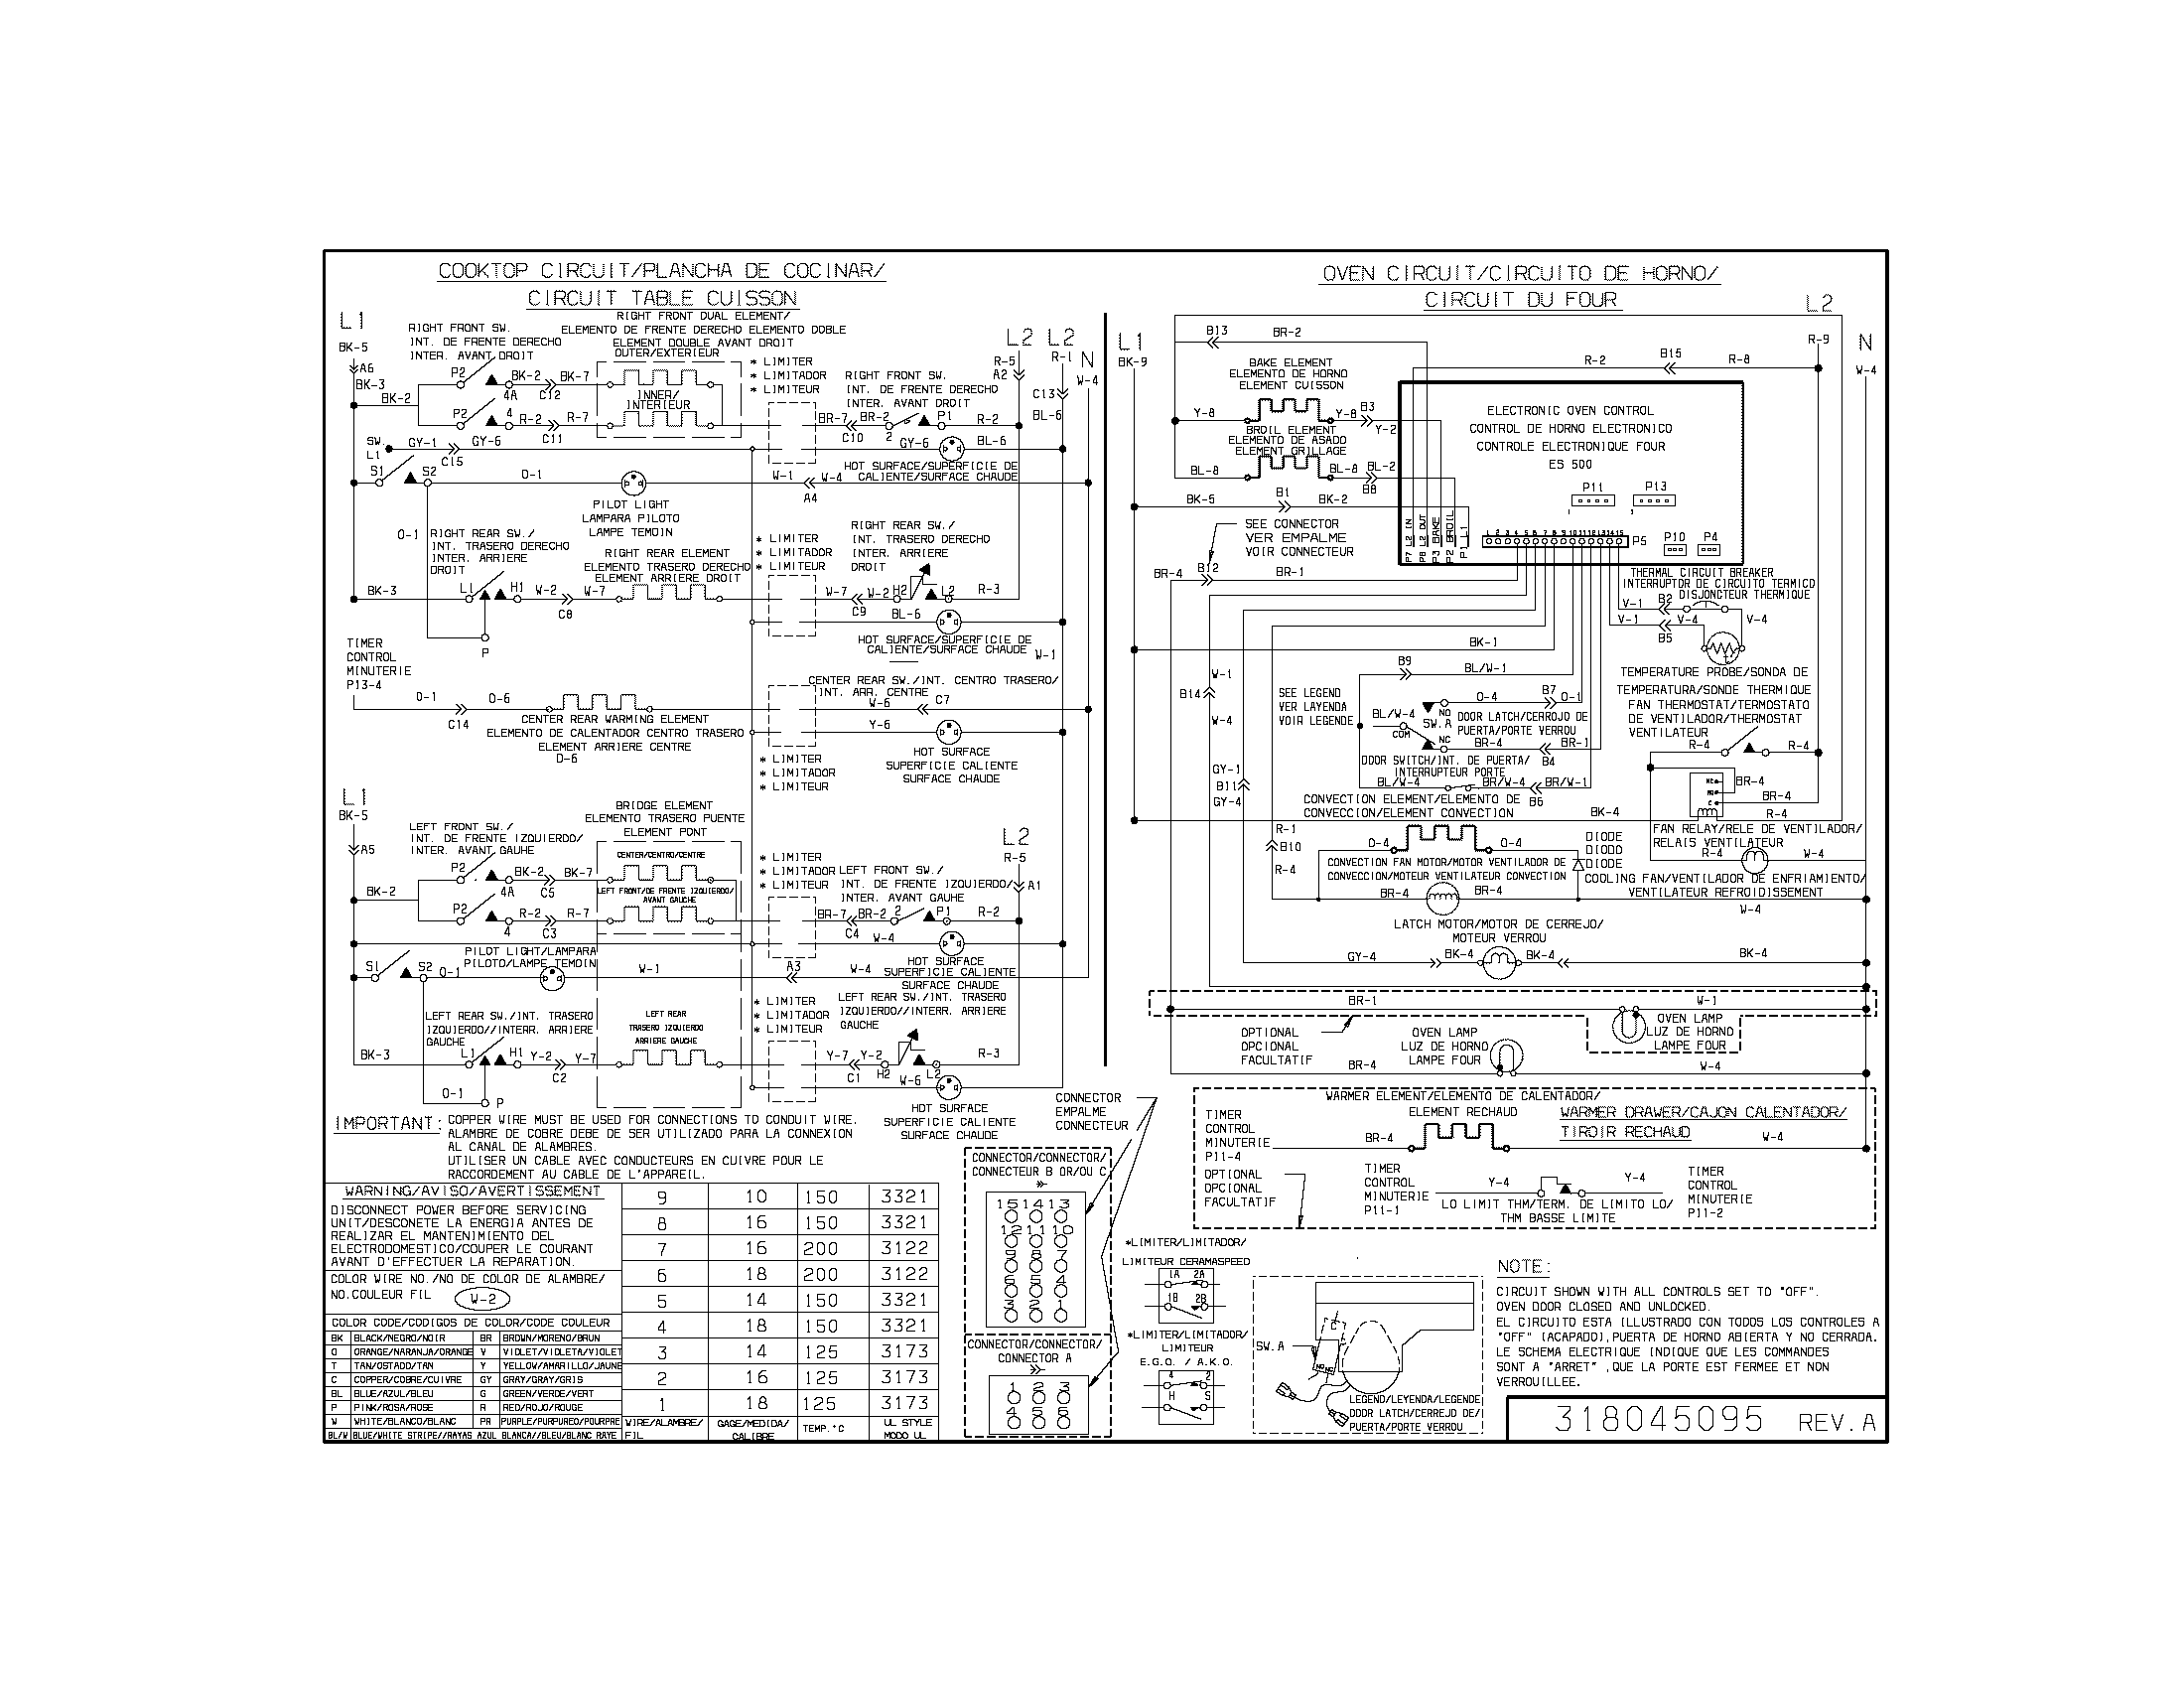 wiring diagram parts frigidaire cpes389cc1 range timer stove clocks and appliance timers electrolux wiring diagram at creativeand.co